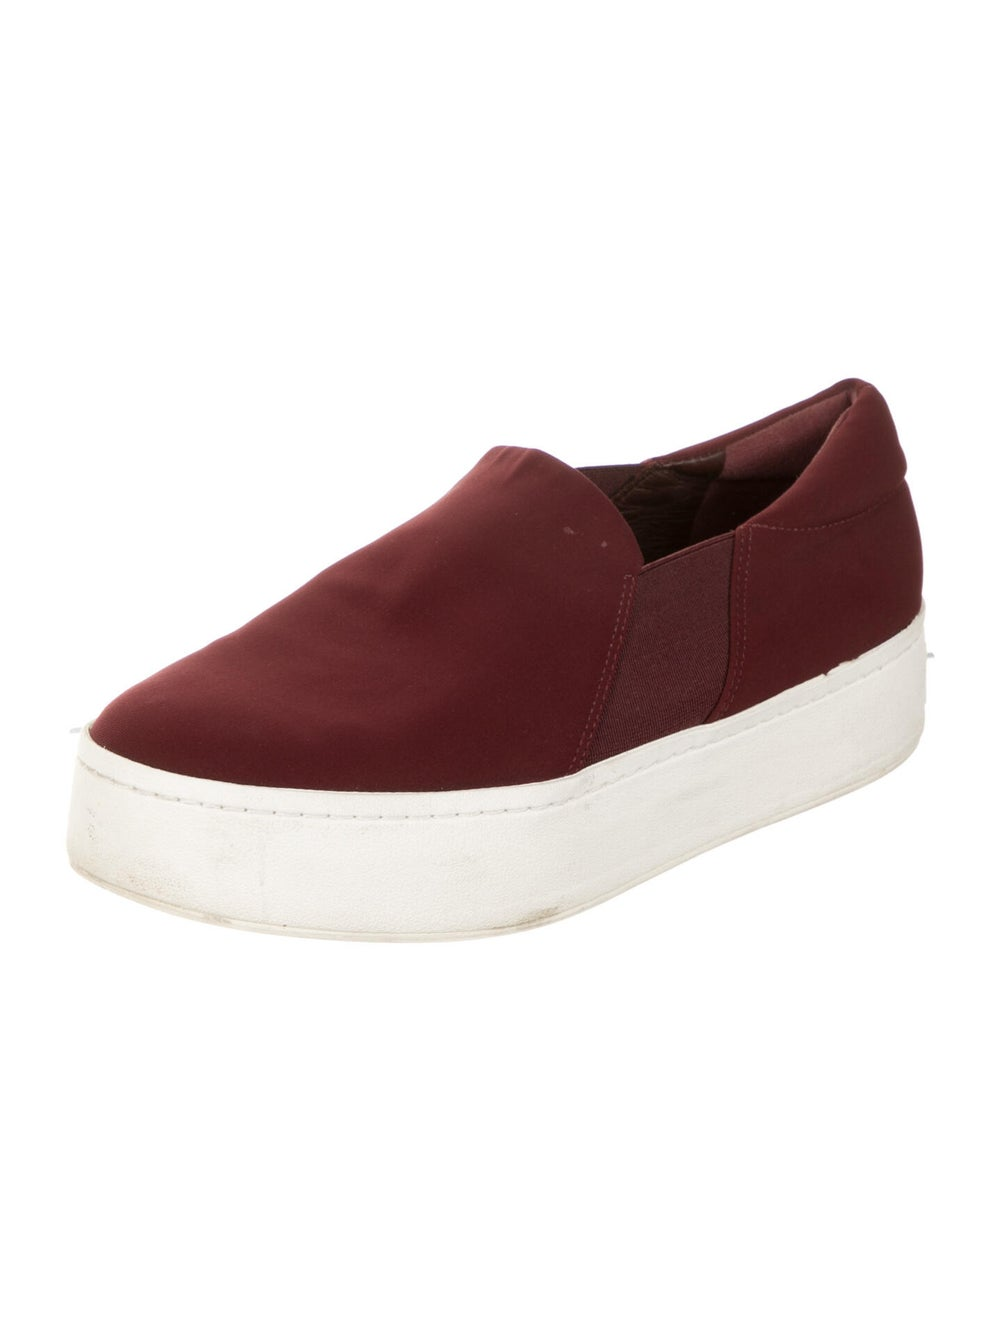 Vince Sneakers - image 2